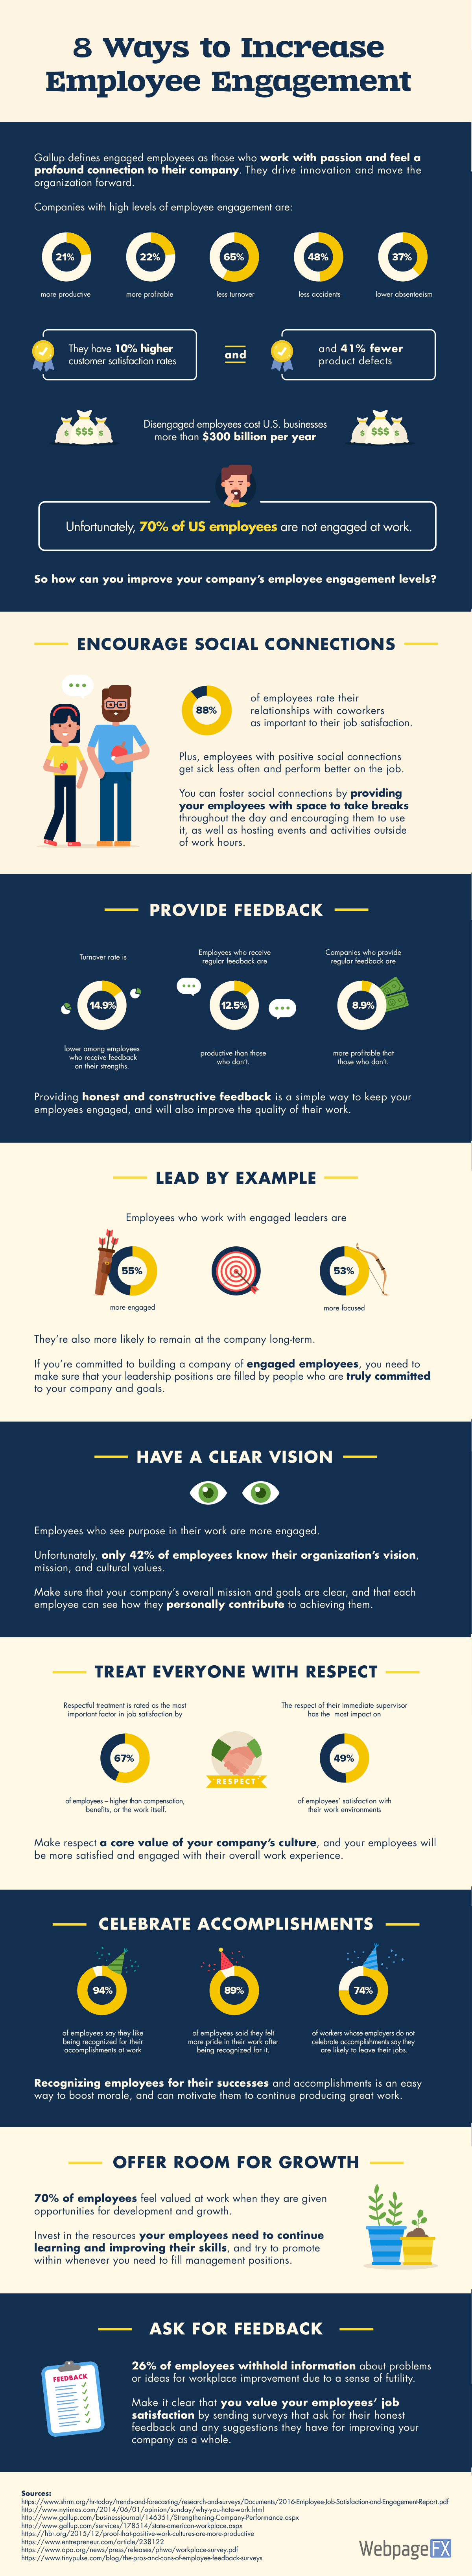 8 Ways to Increase Employee Engagement #Infographic